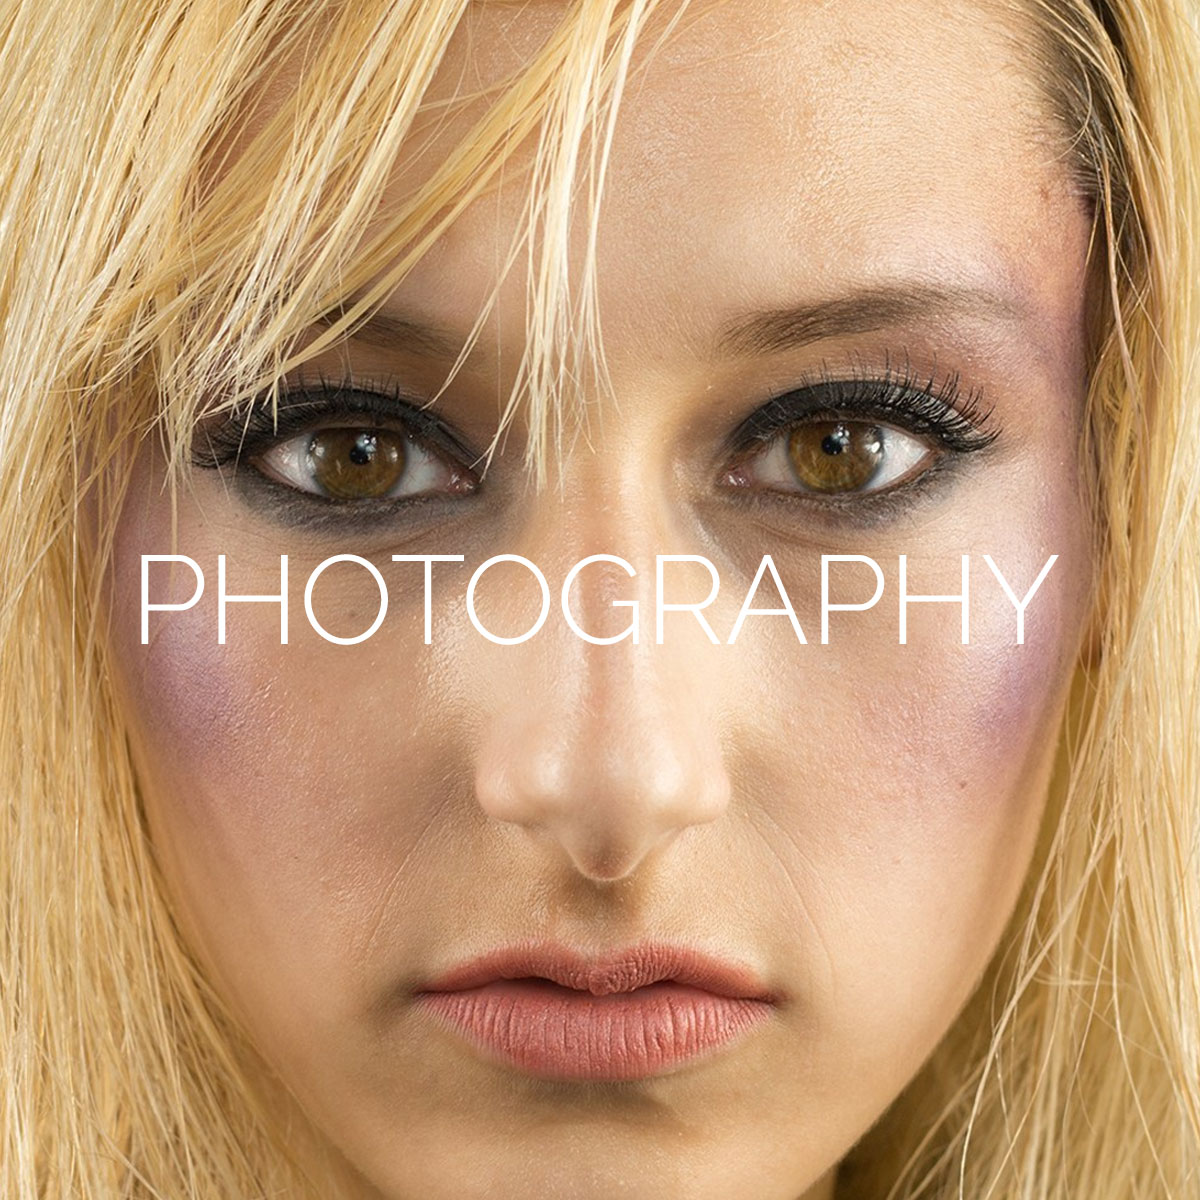 Photography in Los Angeles